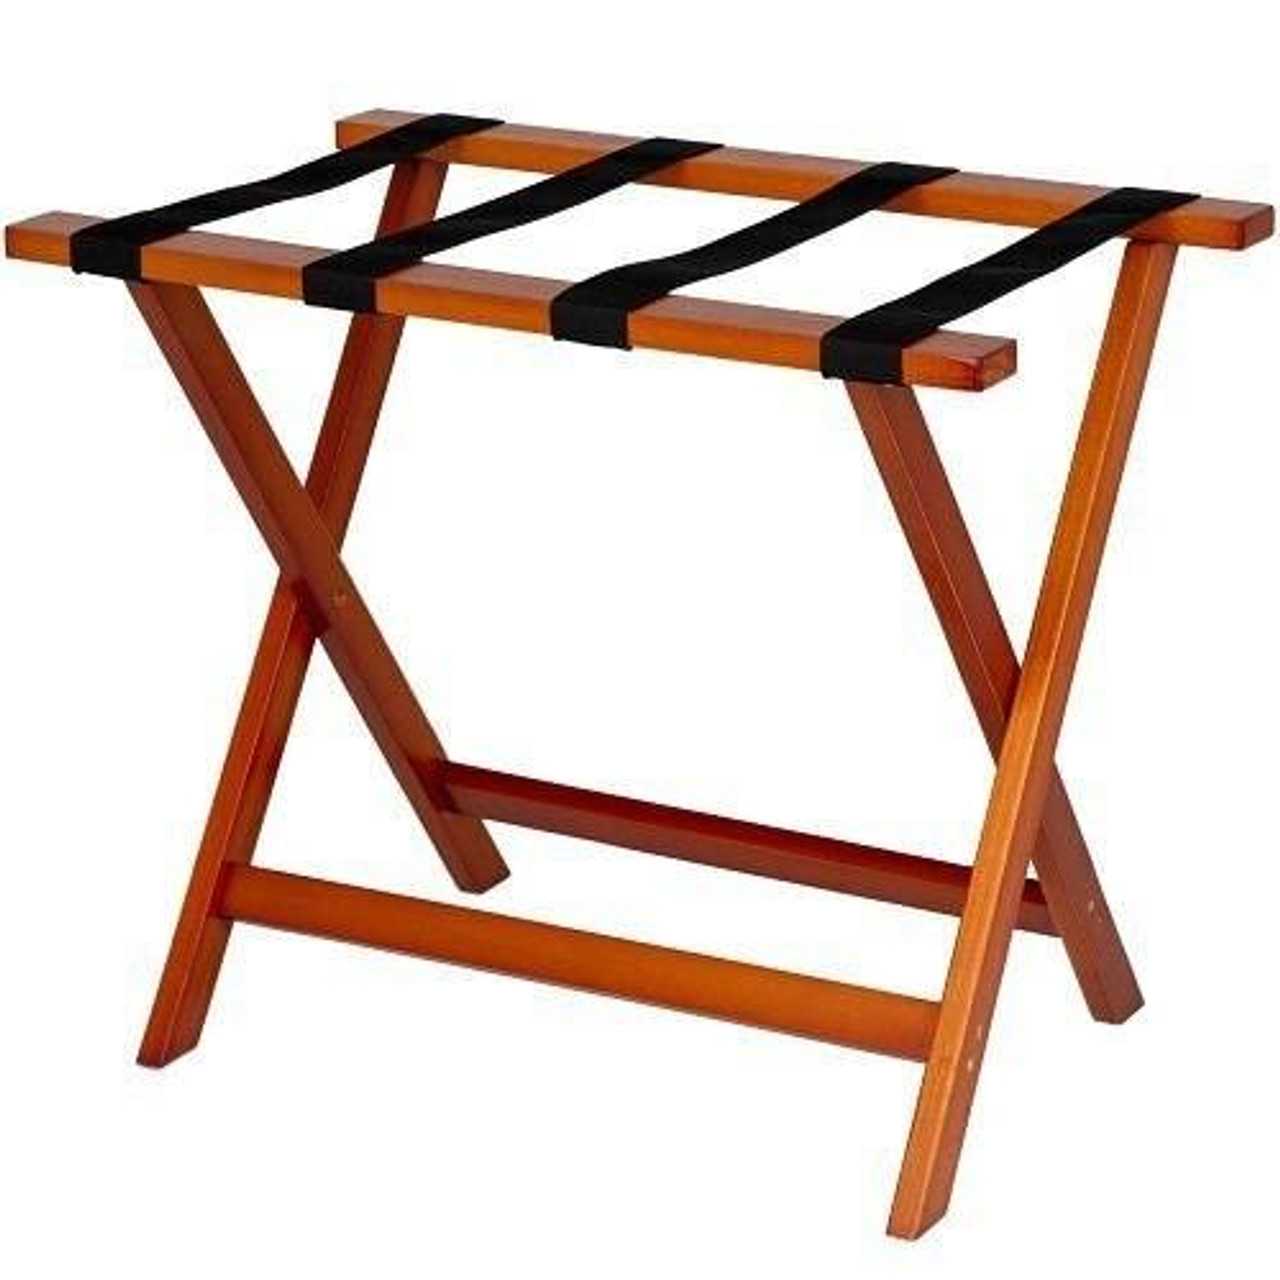 HOSPITALITY 1 SOURCE HOSPITALITY 1 SOURCE or DELUXE WOODEN LUGGAGE RACK or BLACK STRAPS or LIGHT MAHOGANY FINISH or 4 PER CASE